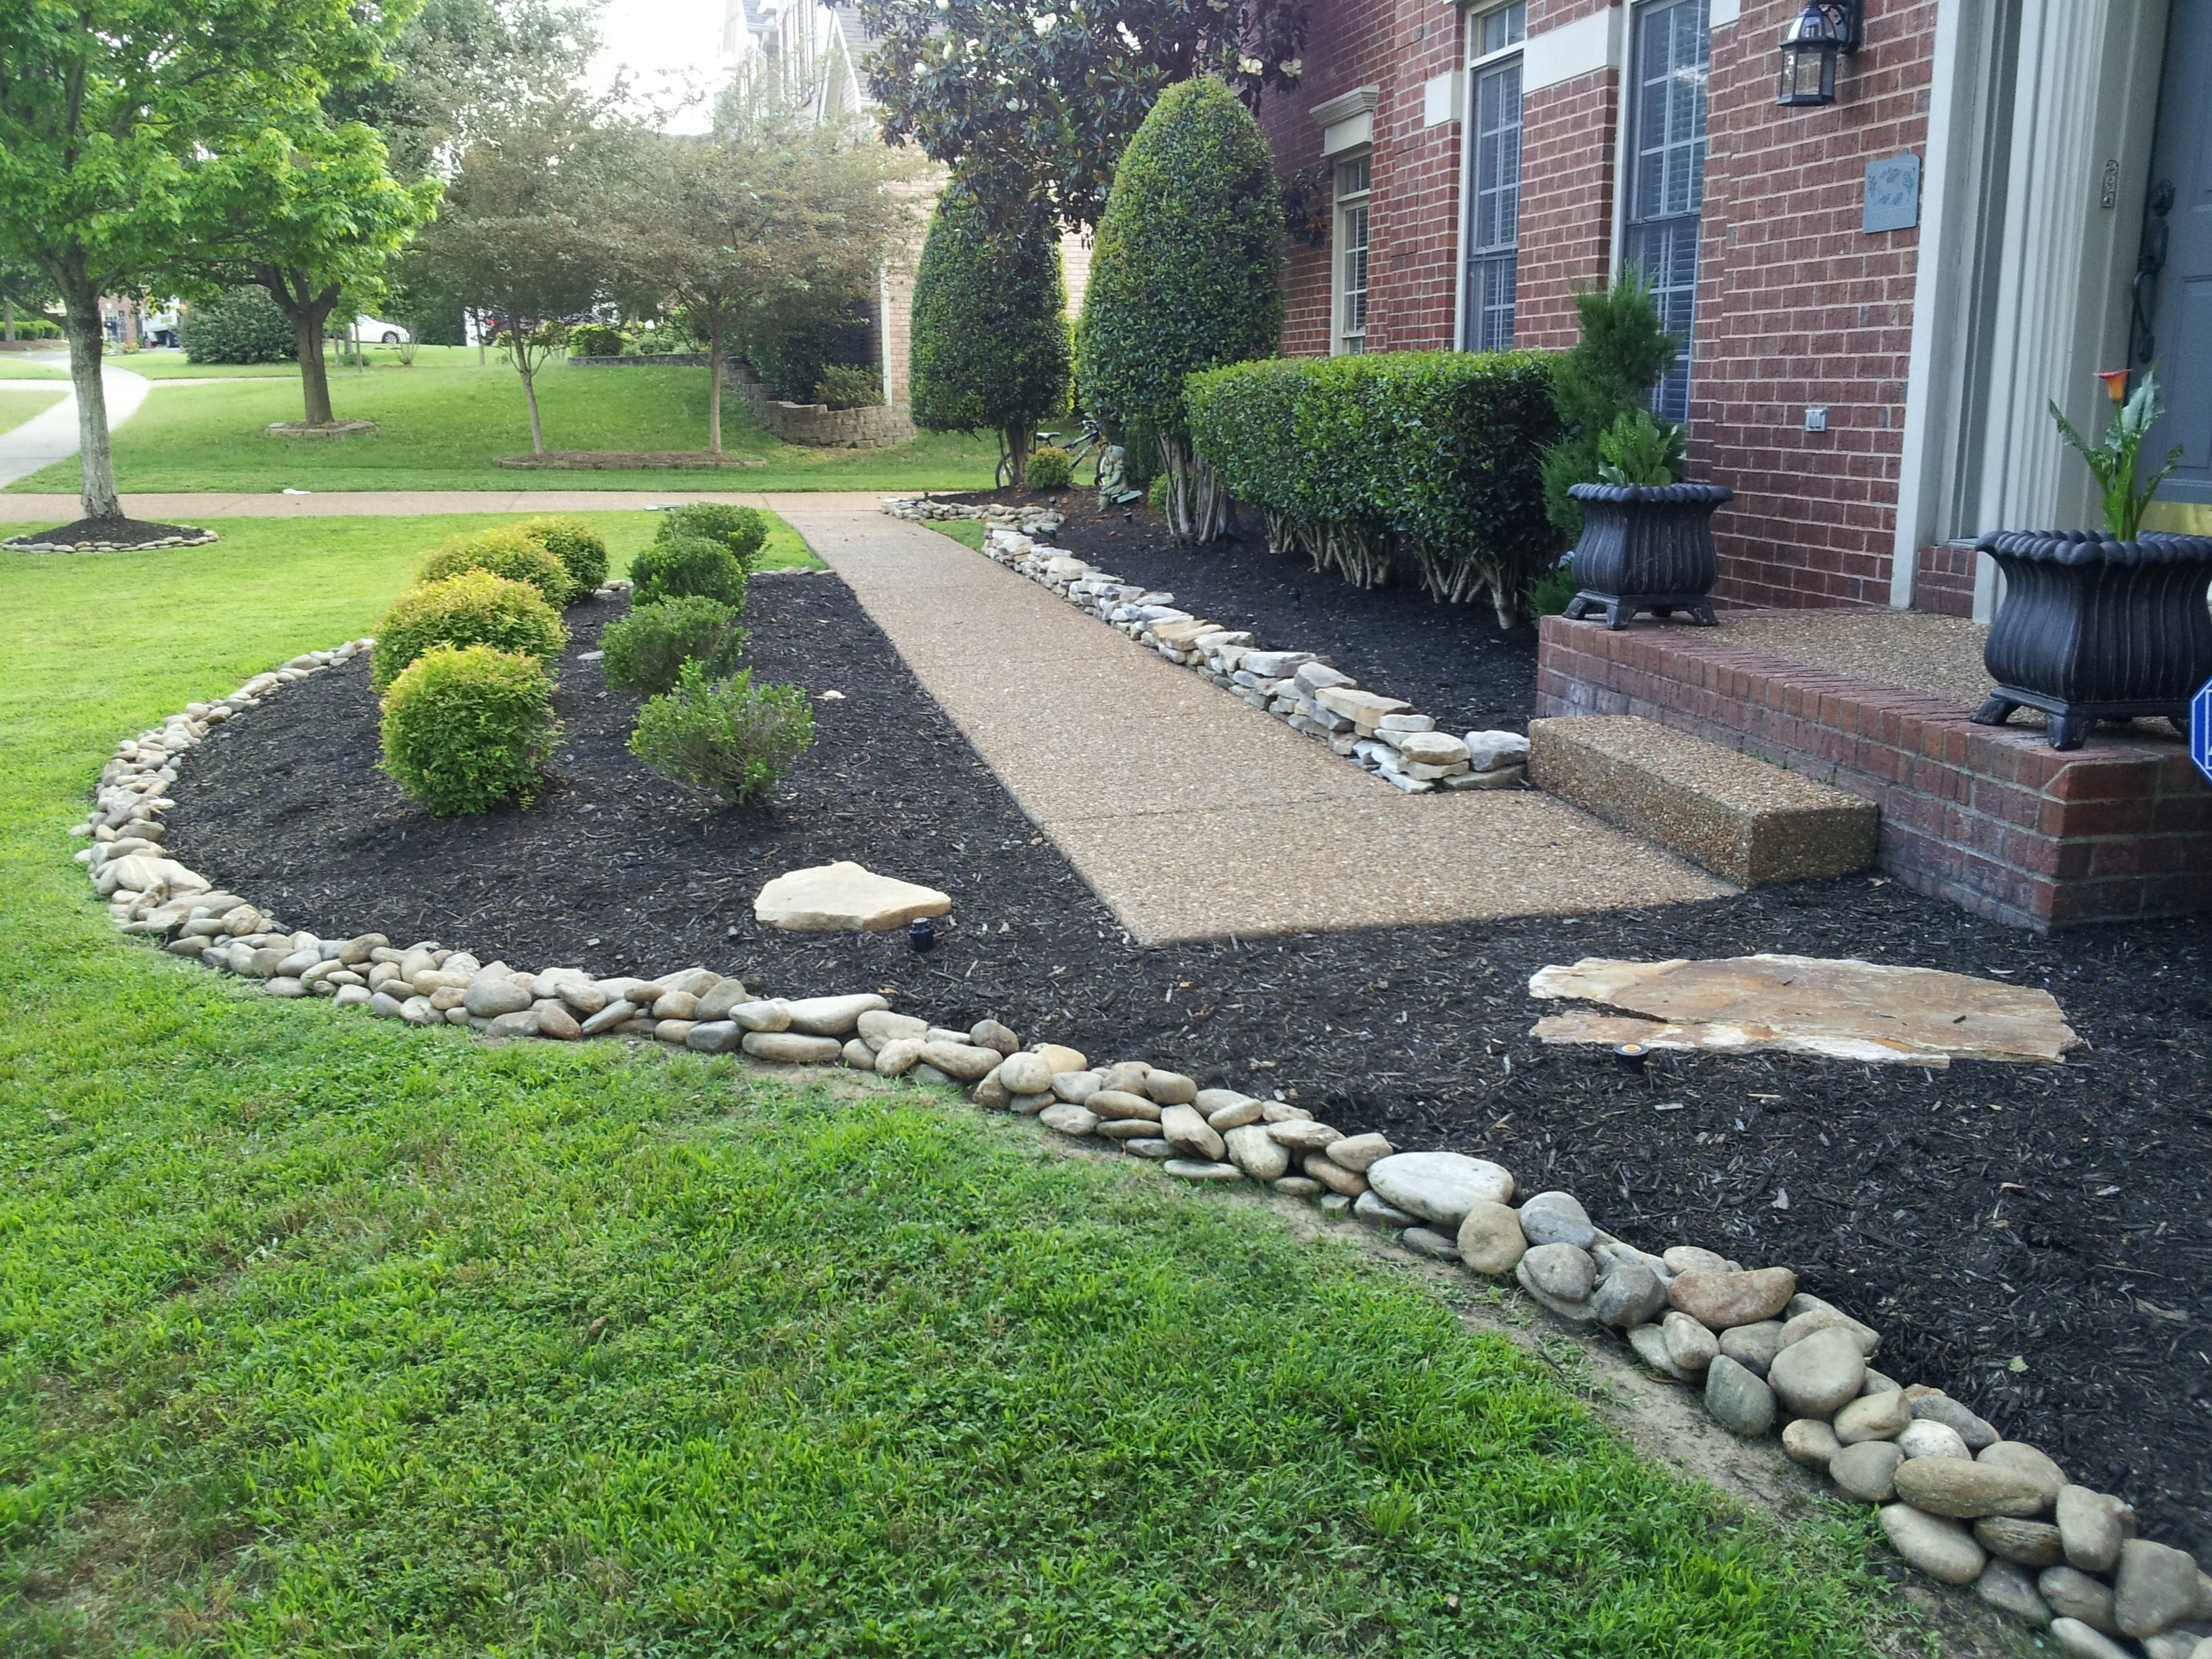 landscaping with stones and rocks instead of mulch archives franklin stone - Rock Landscaping Design Ideas